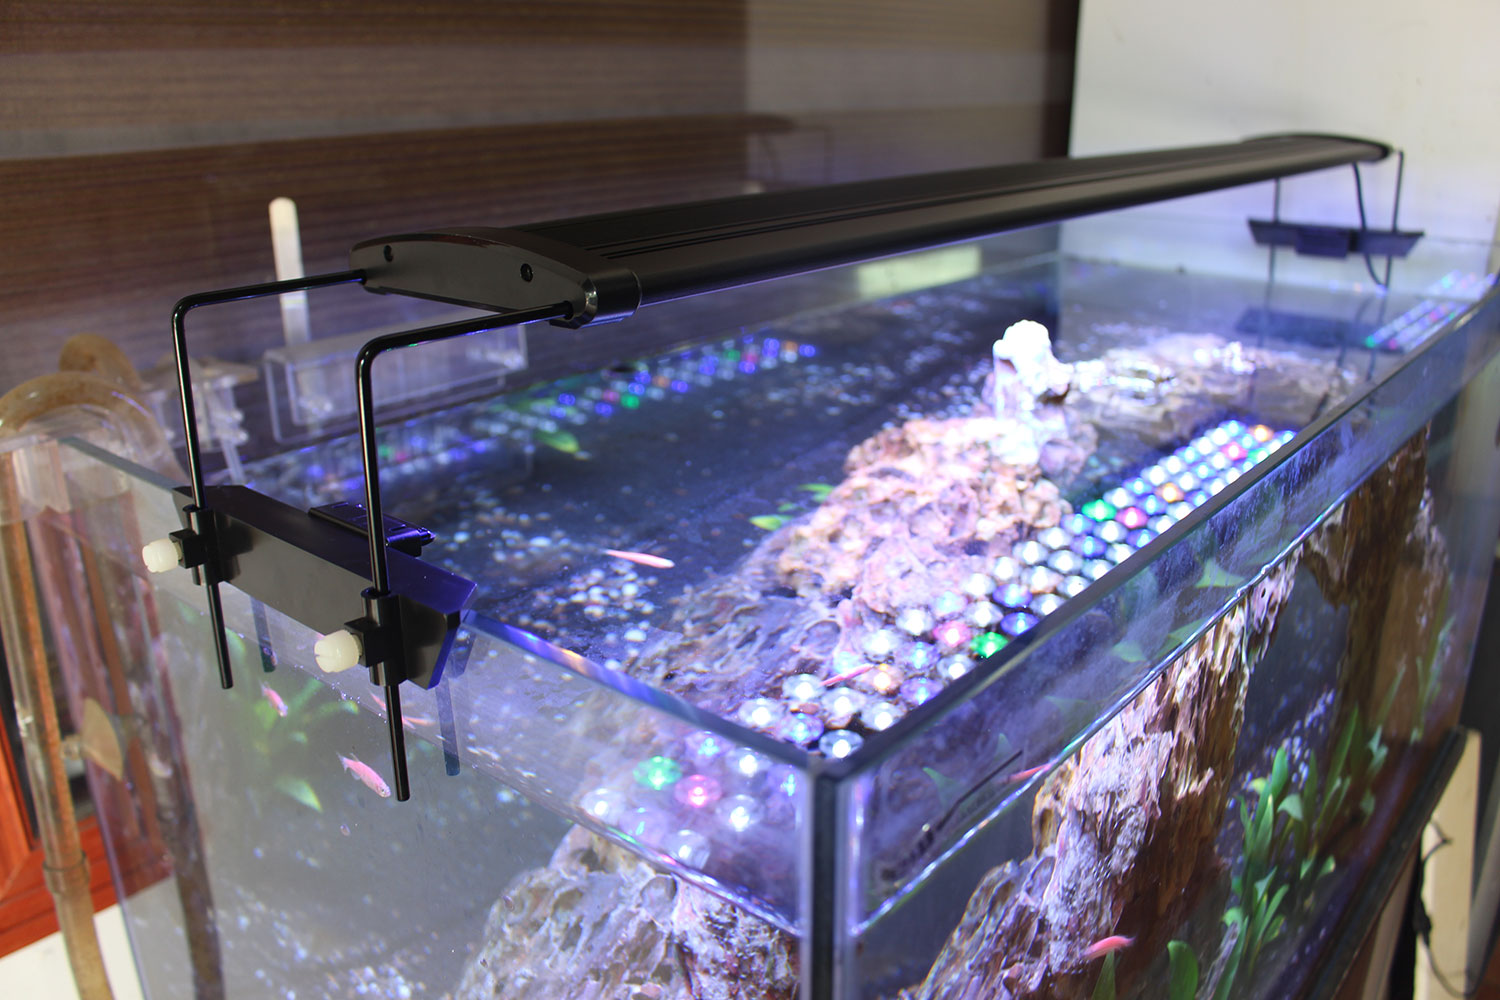 aquarium licht led beleuchtung volles spektrum f r koralle pflanzen meerwasser ebay. Black Bedroom Furniture Sets. Home Design Ideas